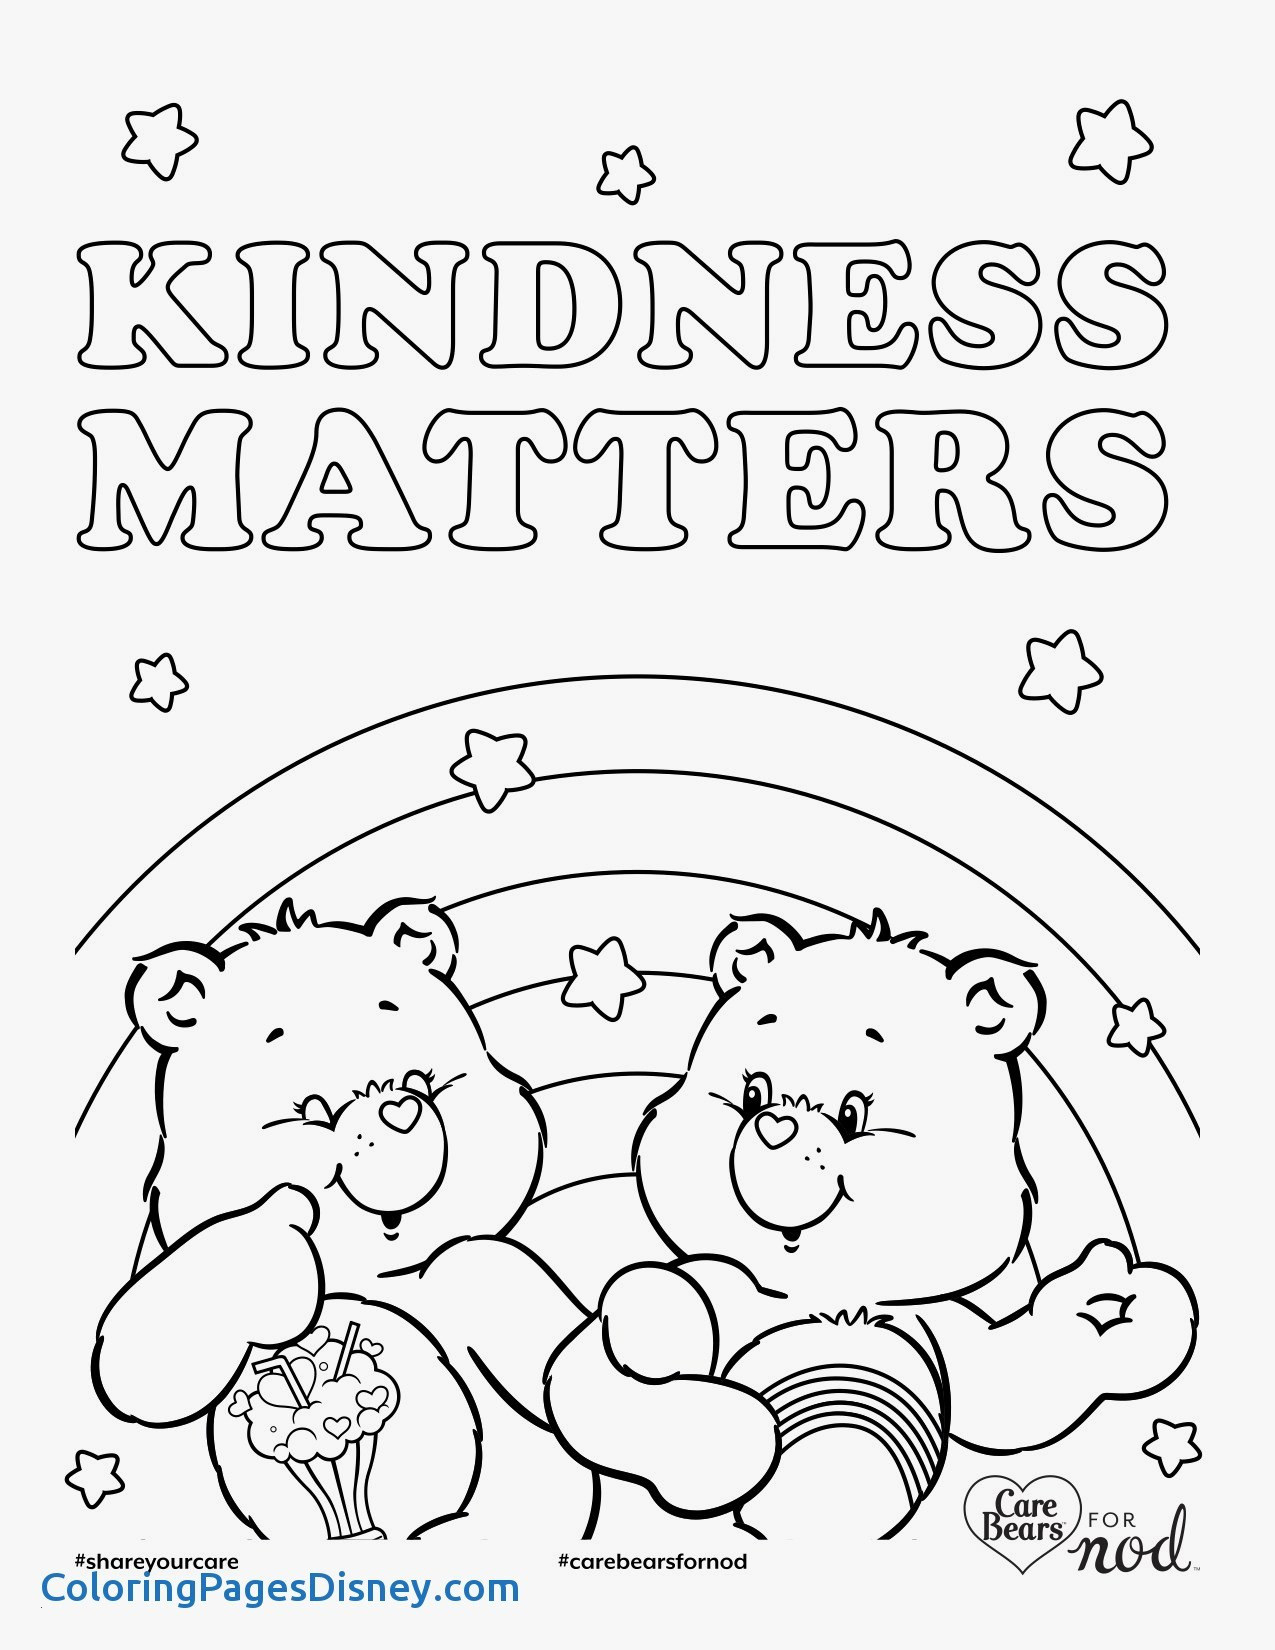 poster coloring pages Download-Poster Coloring Pages 18-r